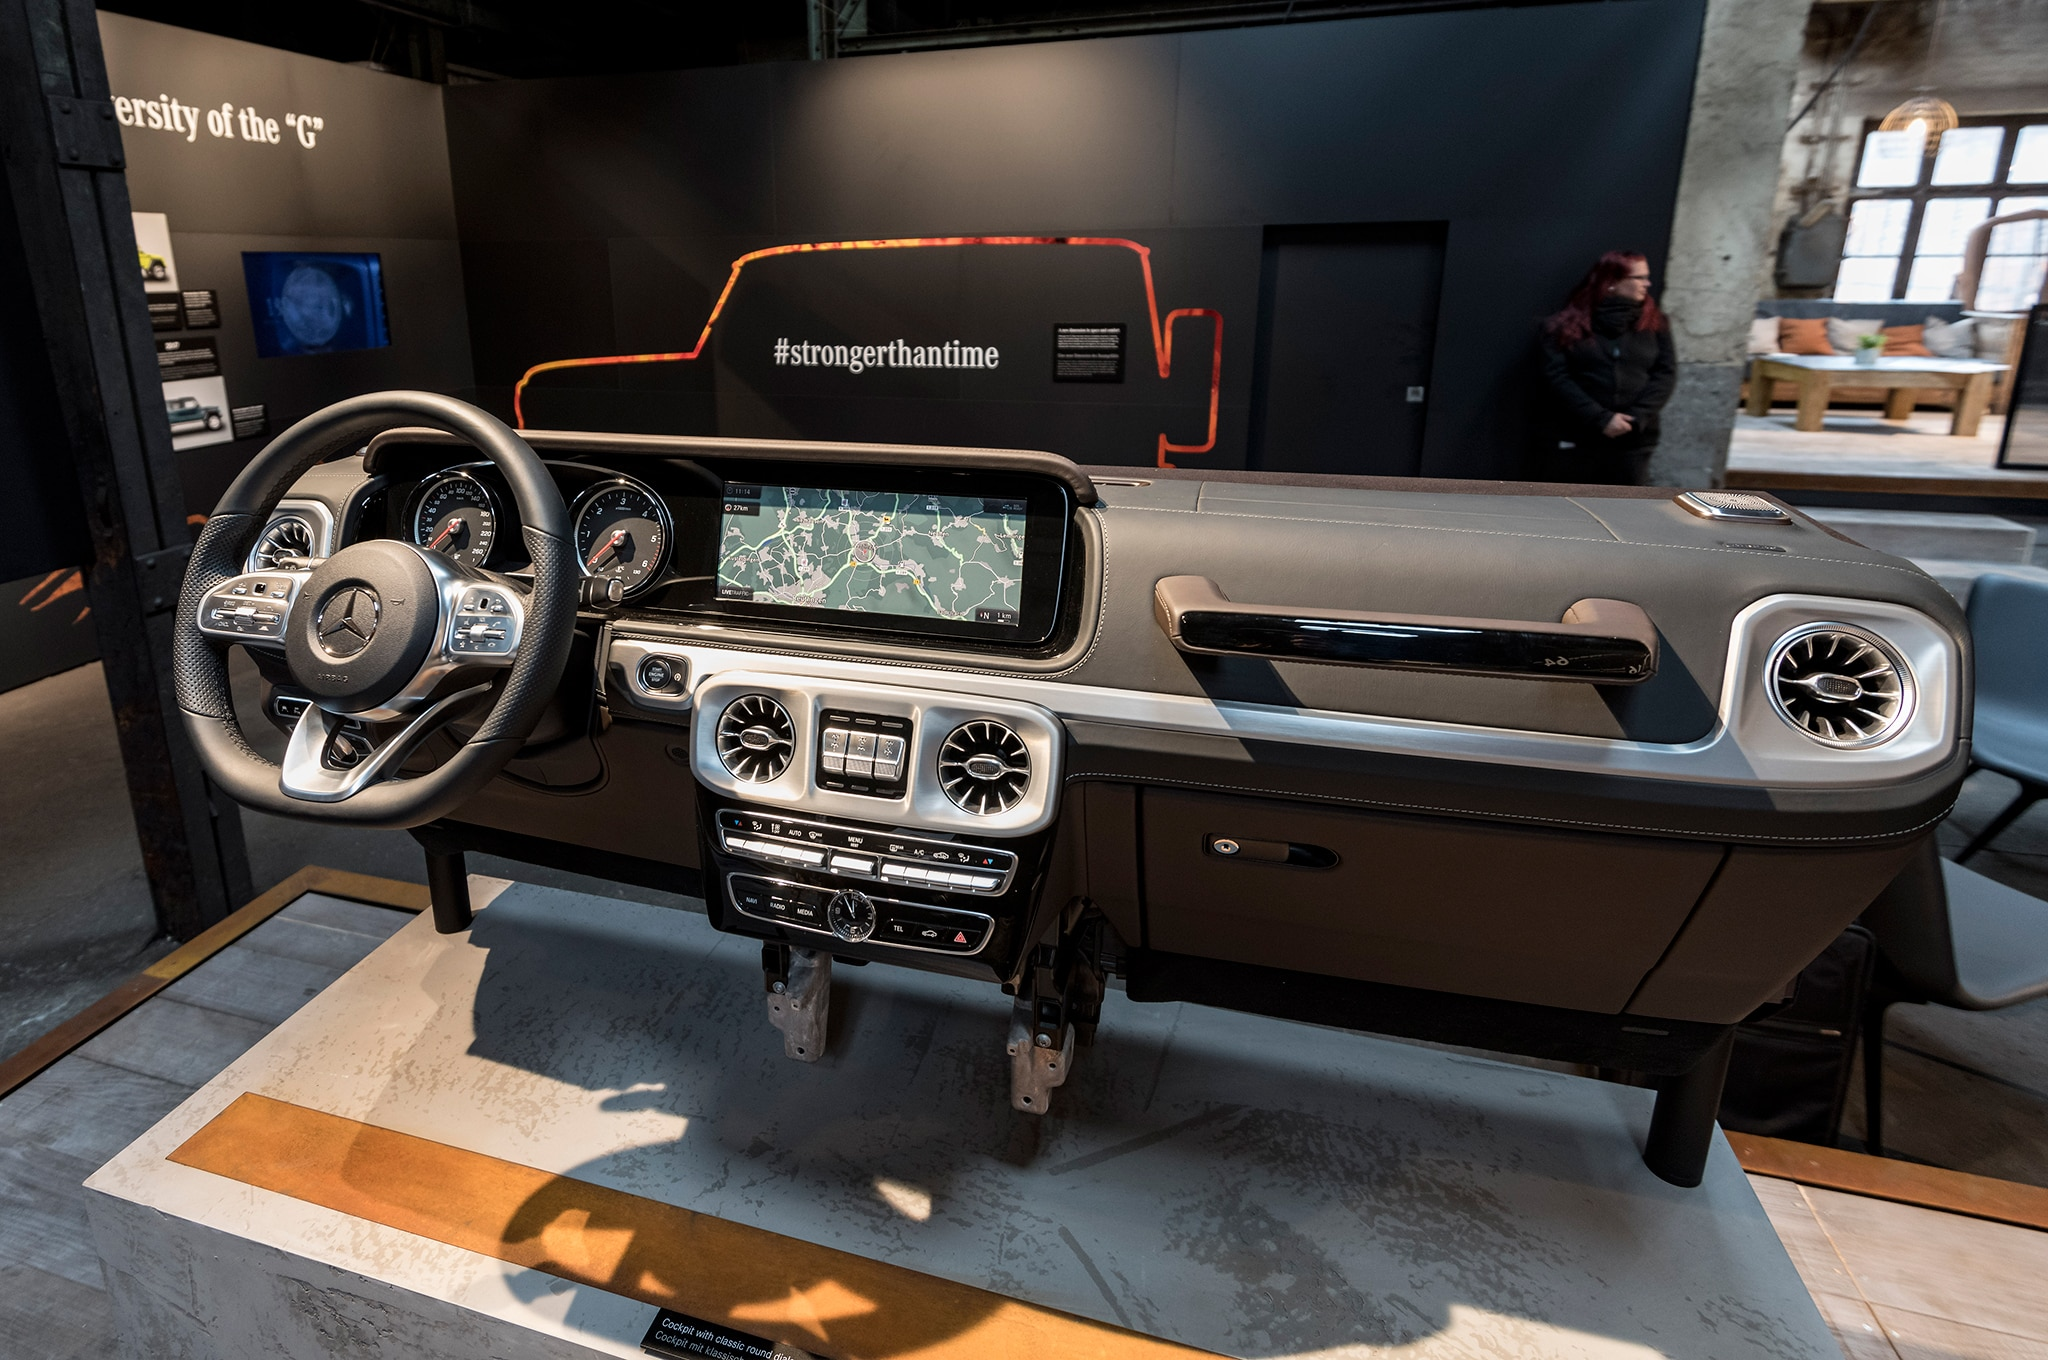 Mercedes preps 2 instrument panels for next G-class SUV